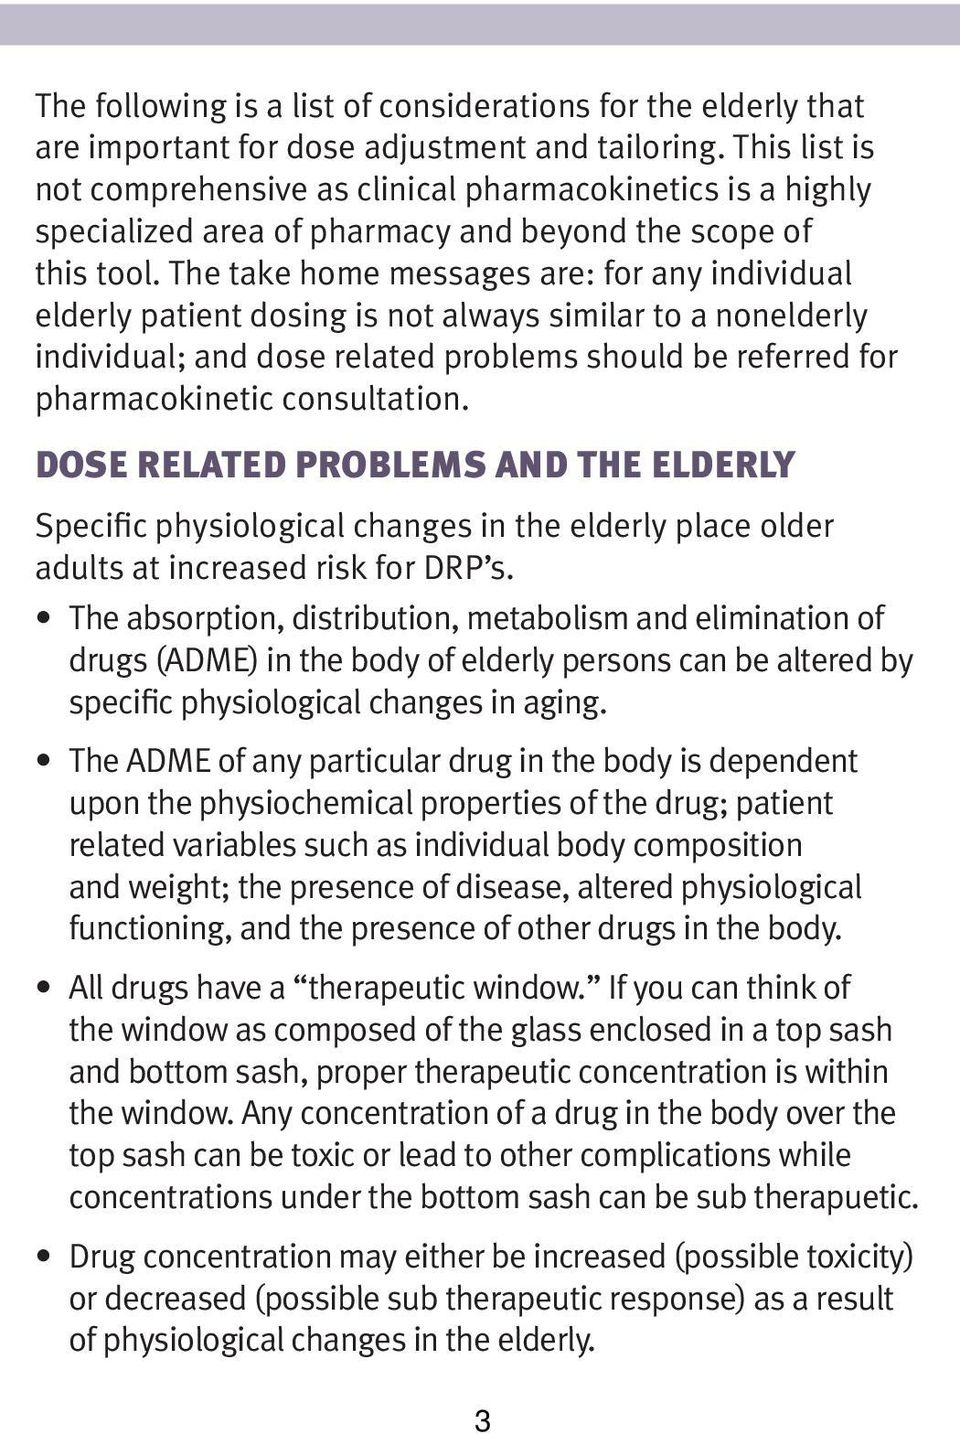 The take home messages are: for any individual elderly patient dosing is not always similar to a nonelderly individual; and dose related problems should be referred for pharmacokinetic consultation.